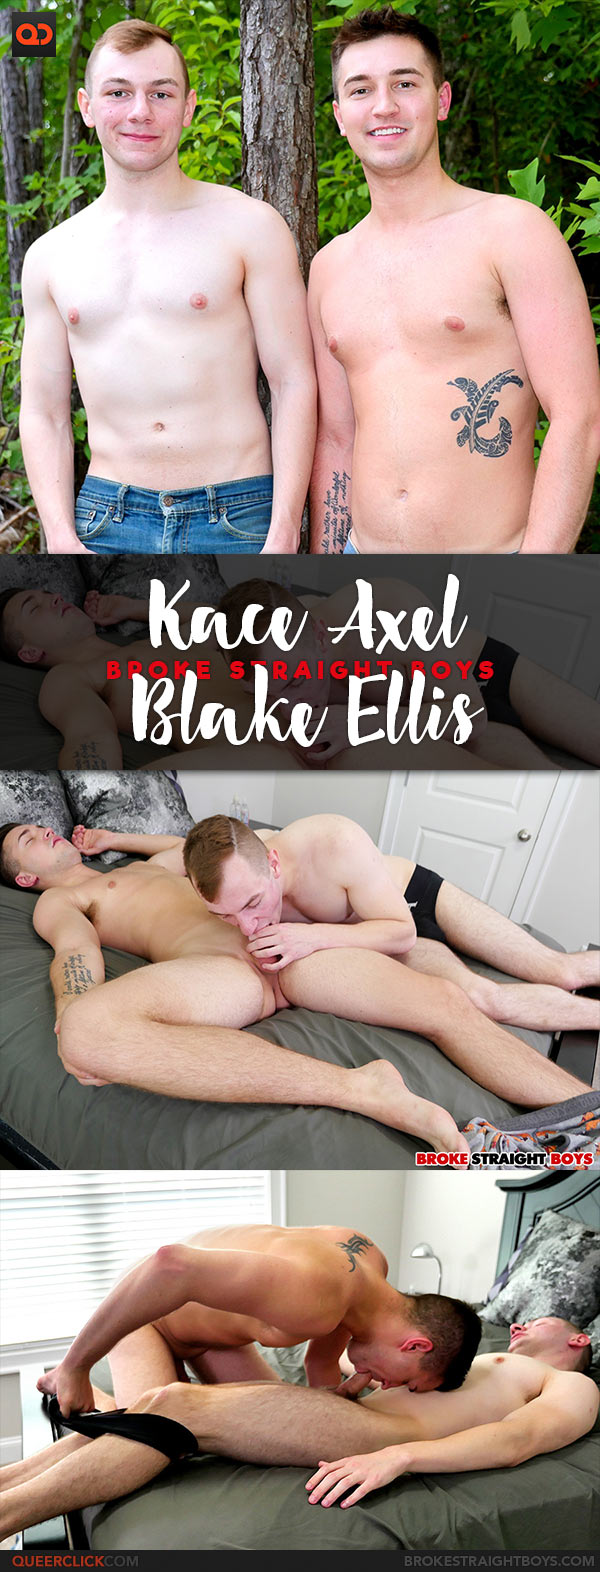 Broke Straight Boys: Kace Axel Fucks Blake Ellis - Bareback